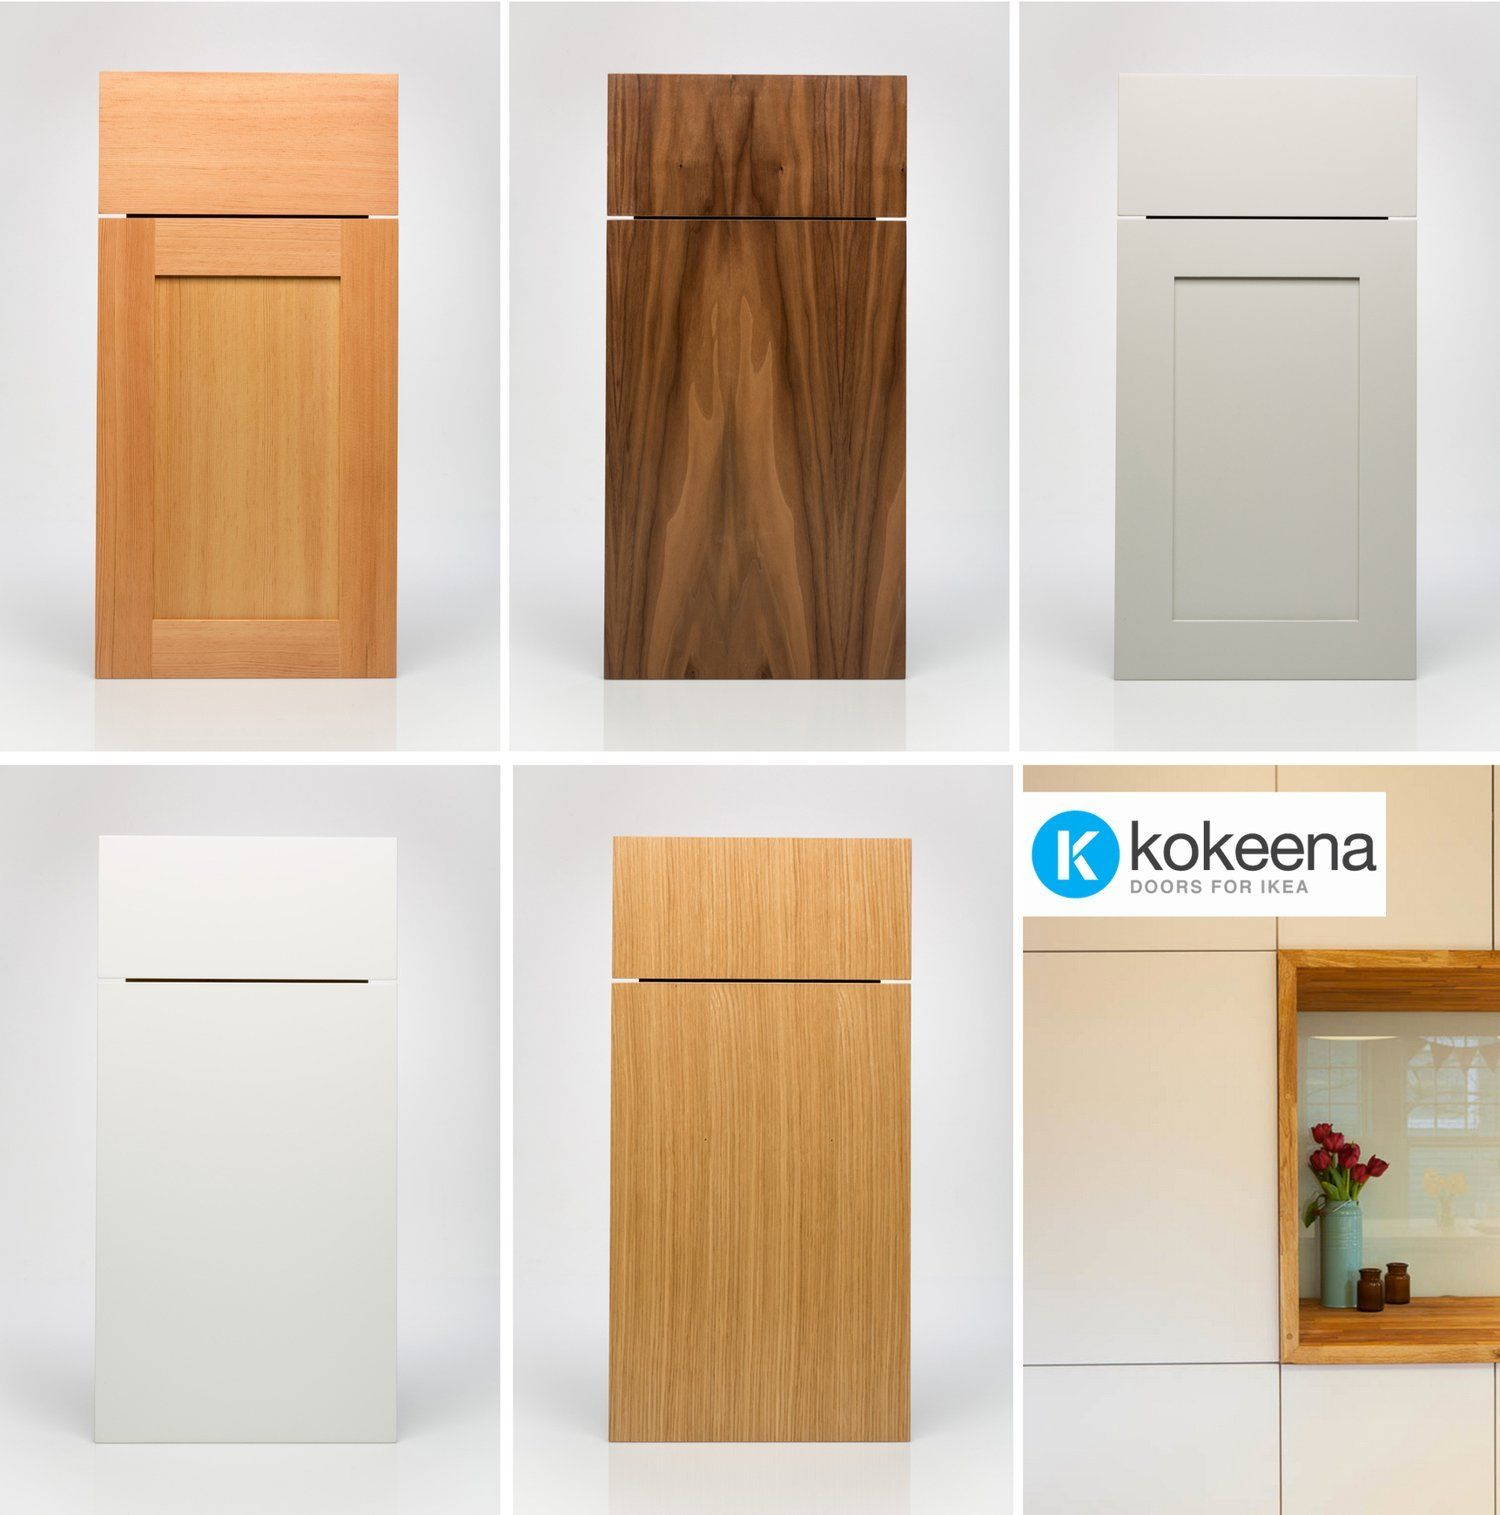 pre painted kitchen cabinet doors oak kitchen cabinet doors Kokeena Real Wood Ready Made Cabinet Doors for IKEA AKURUM Kitchens Store Profile